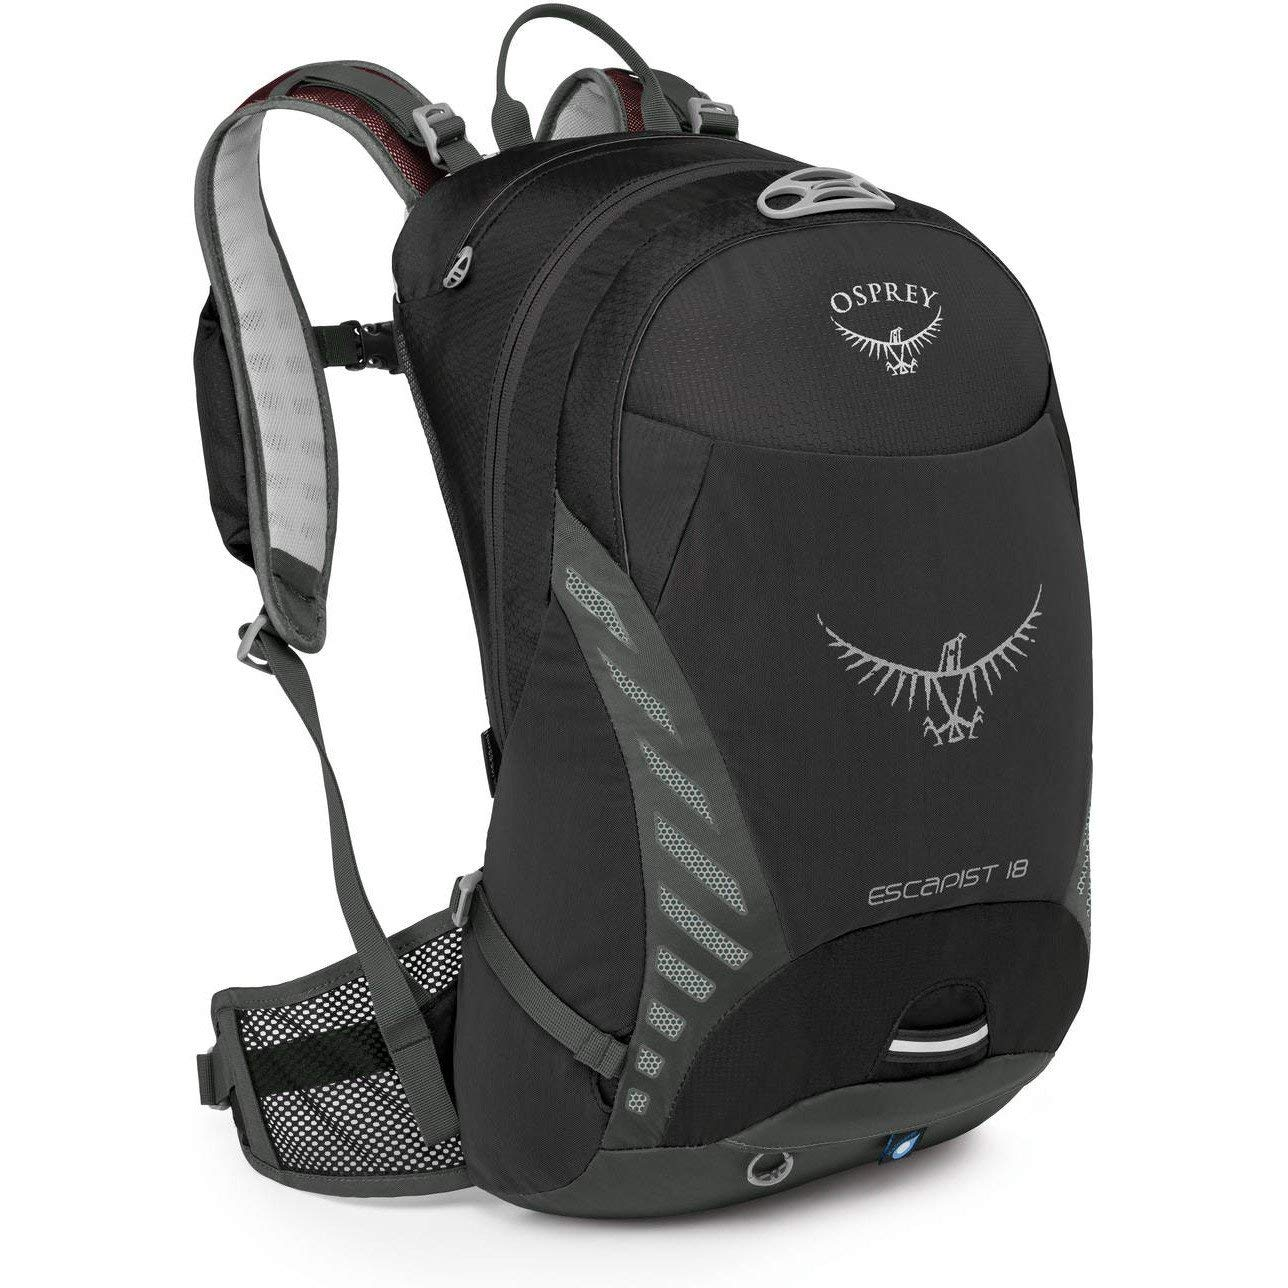 Osprey Packs Escapist 18 Daypacks, Black, Small/Medium